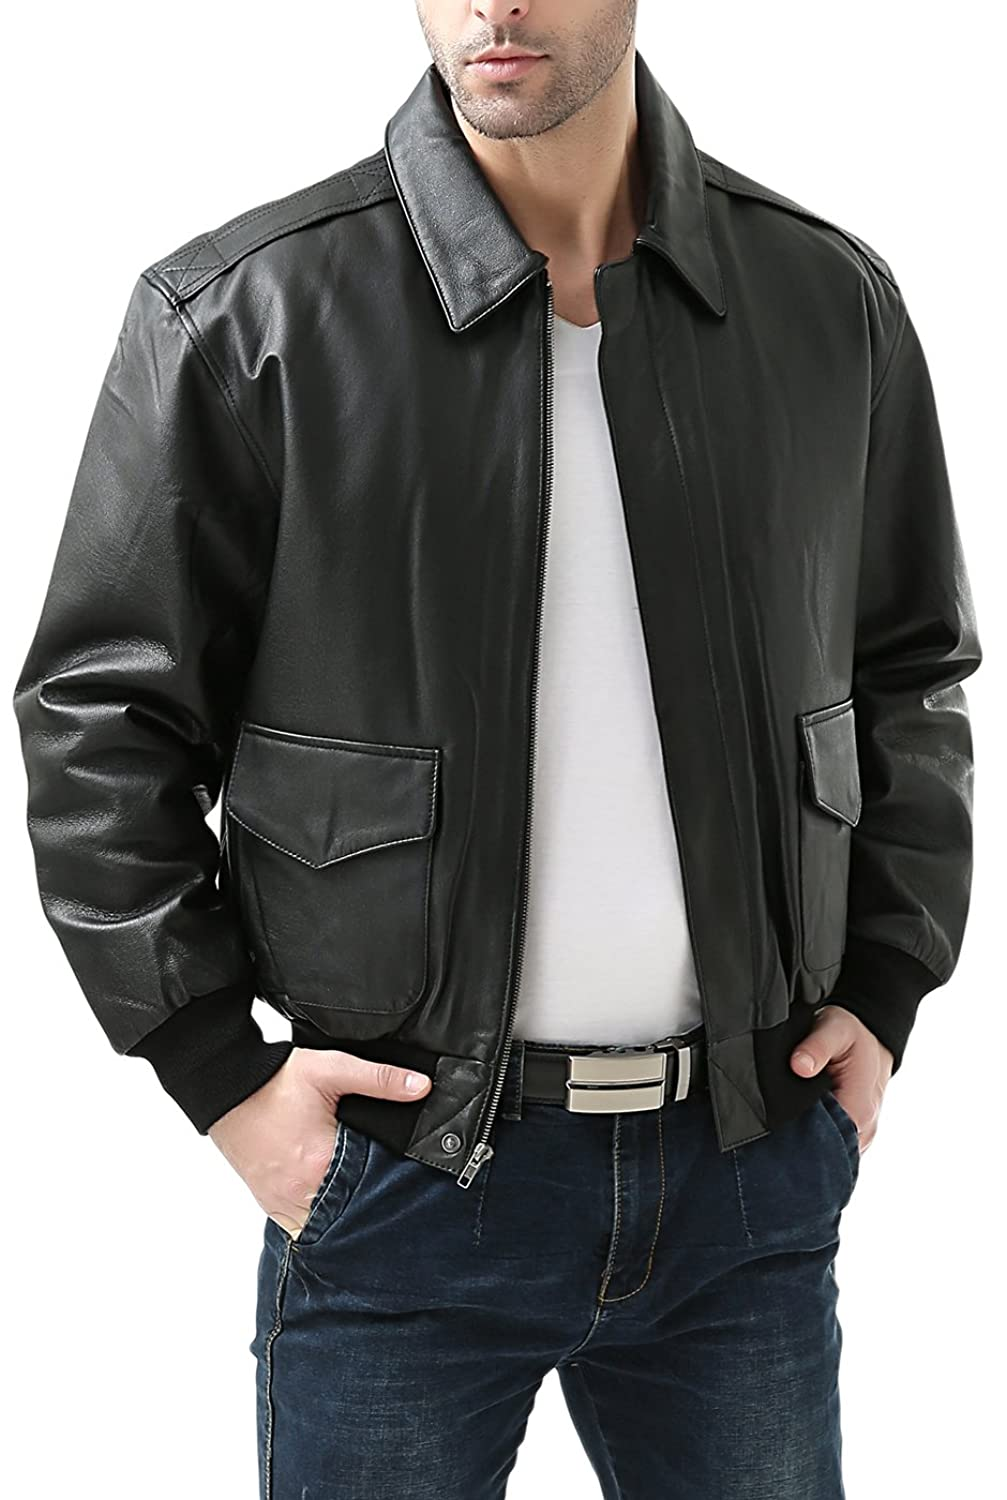 Leather jacket lining